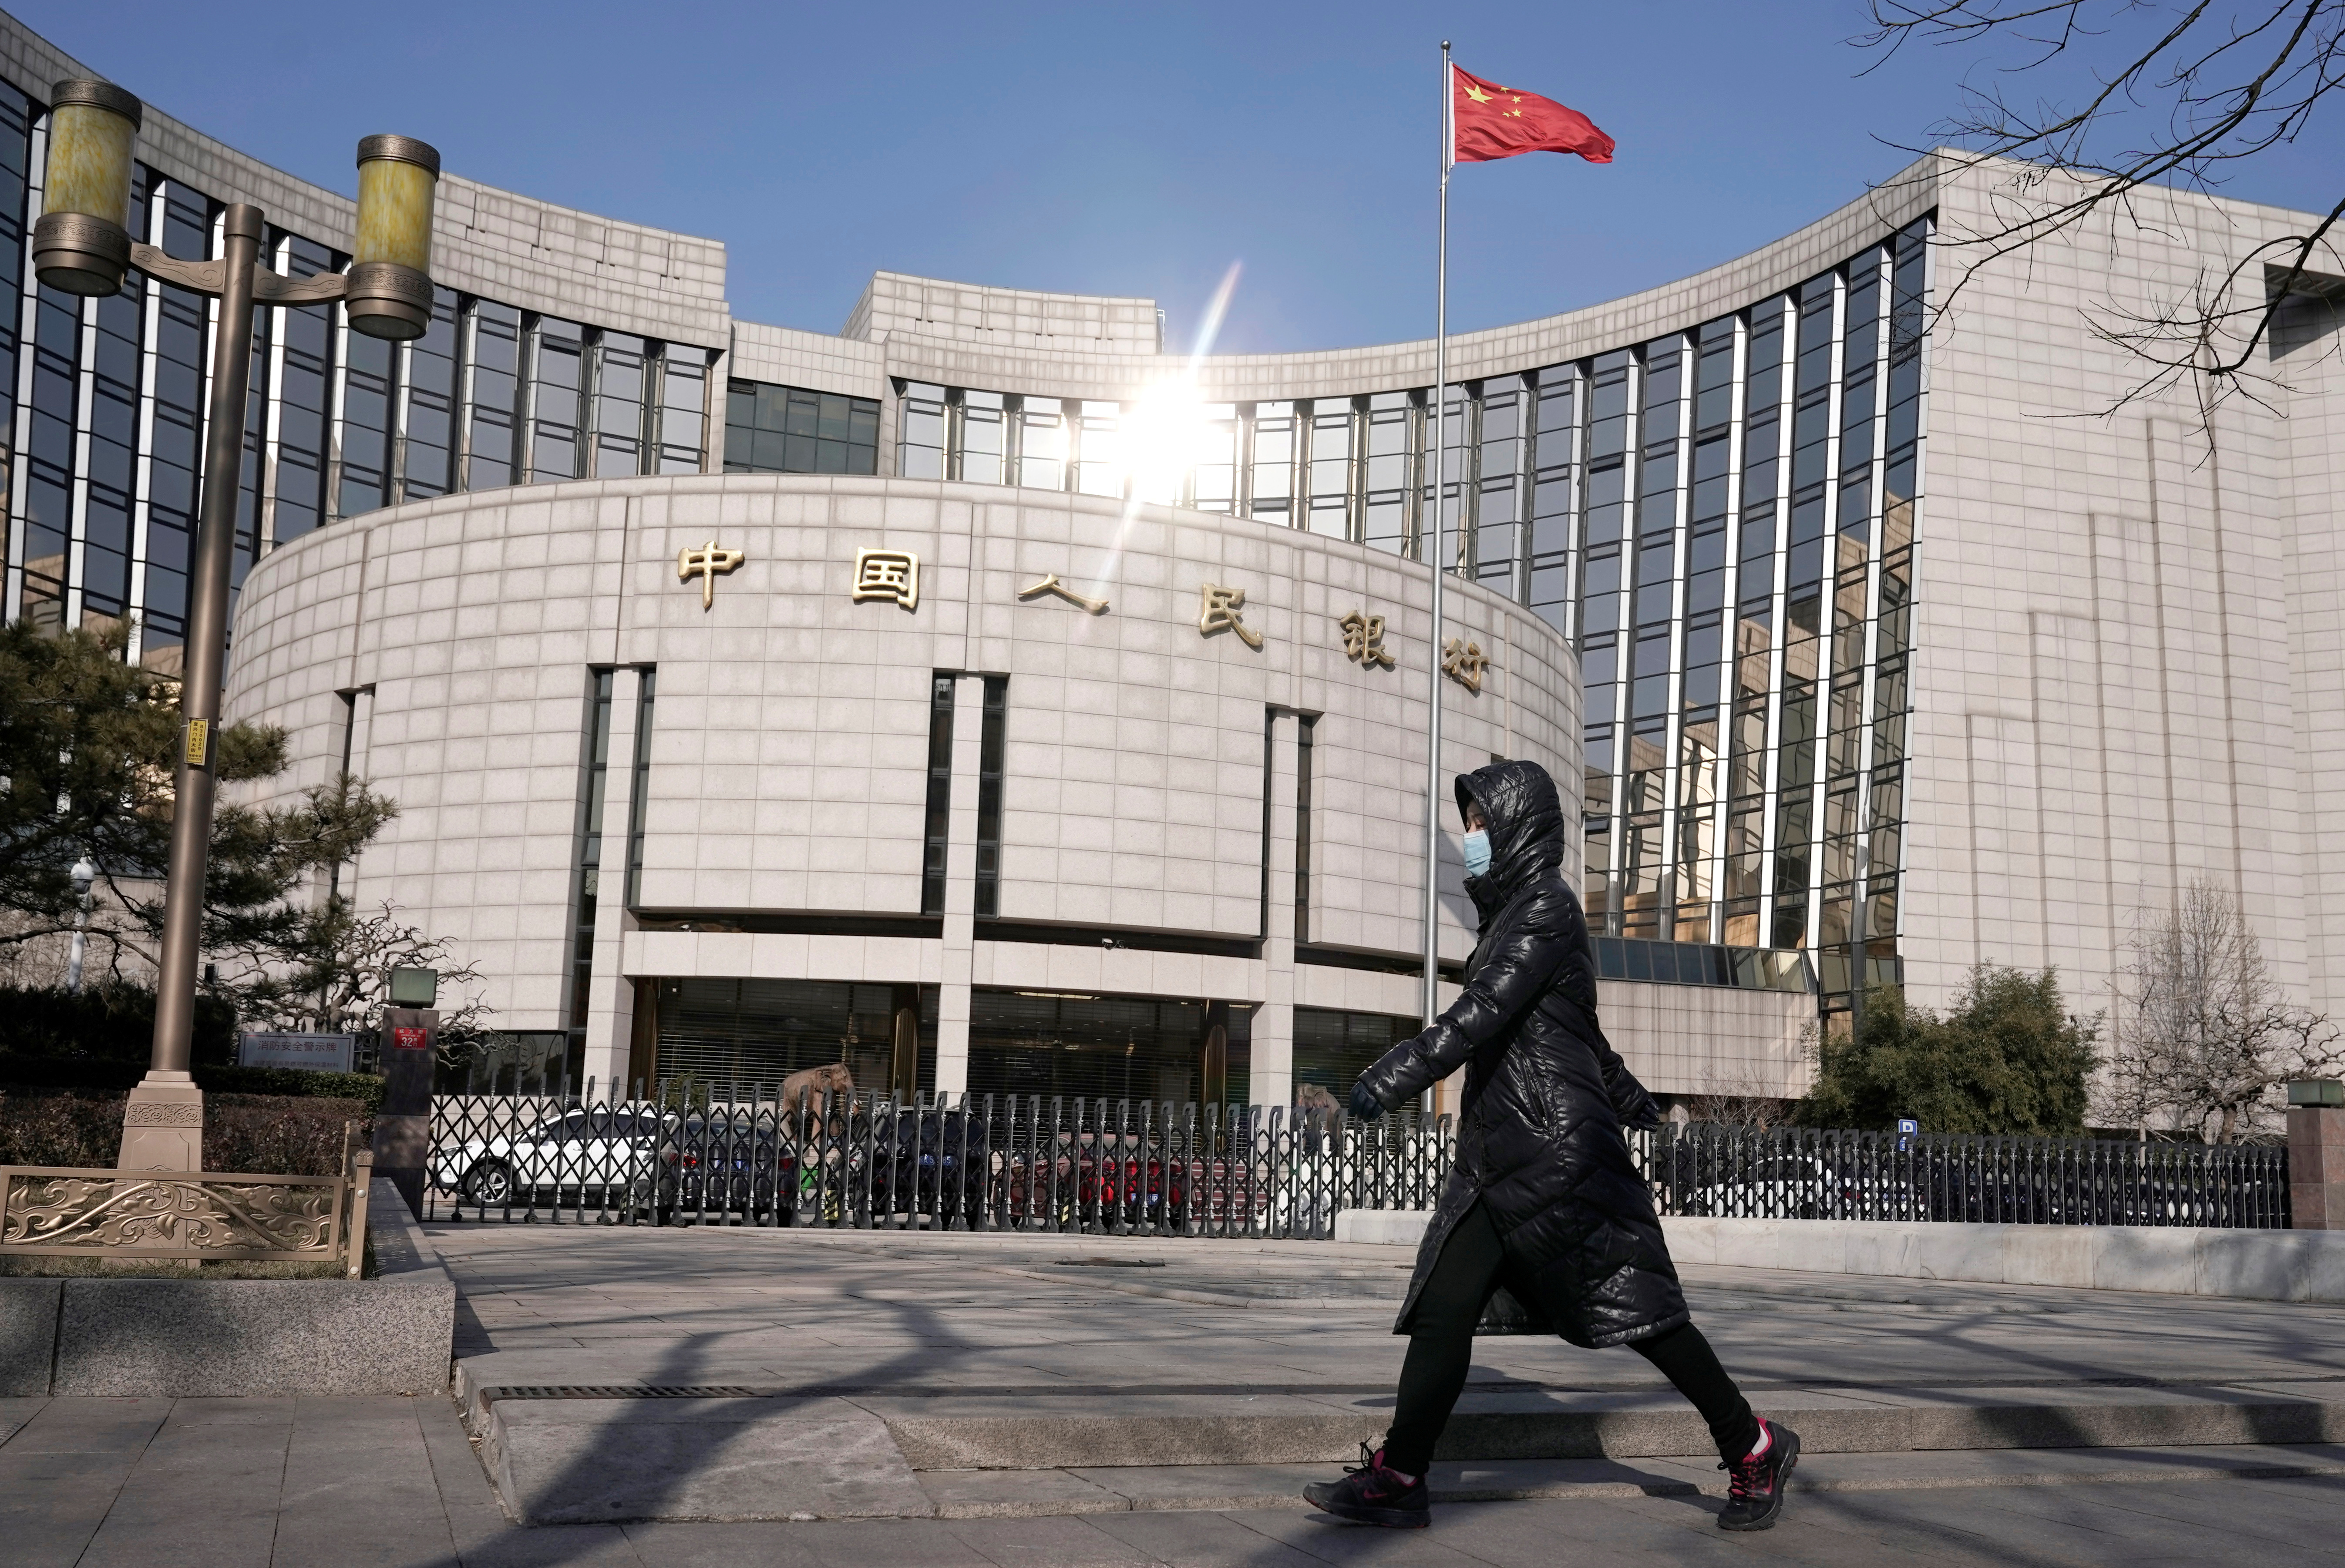 A woman wearing a mask walks past the headquarters of the People's Bank of China, the central bank, in Beijing, China, as the country is hit by an outbreak of the new coronavirus, February 3, 2020. REUTERS/Jason Lee